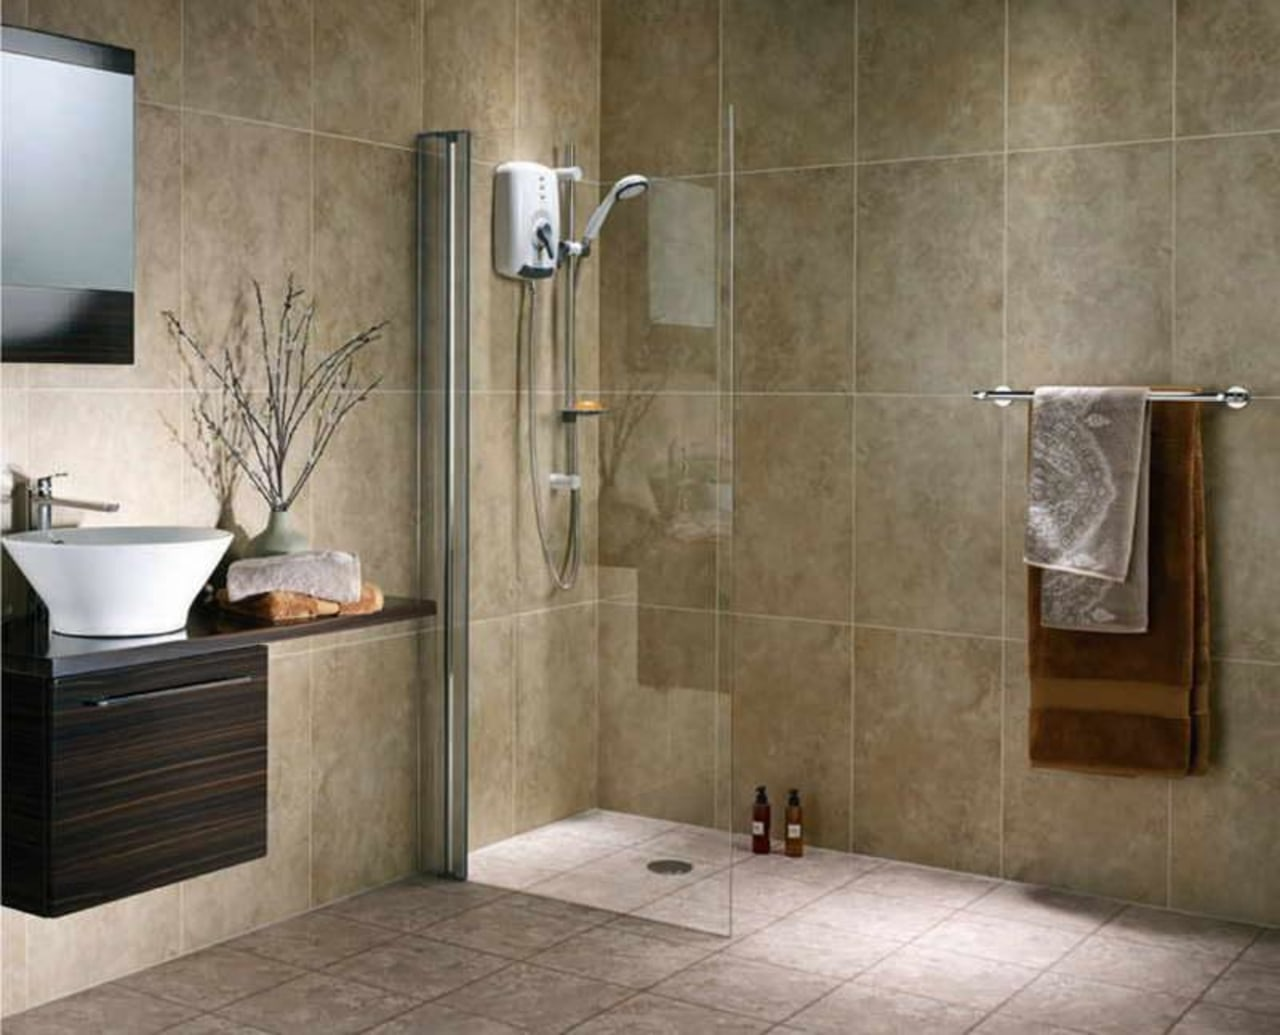 You don't have to have an enclosure – bathroom, floor, flooring, interior design, plumbing fixture, shower, tap, tile, wall, brown, gray